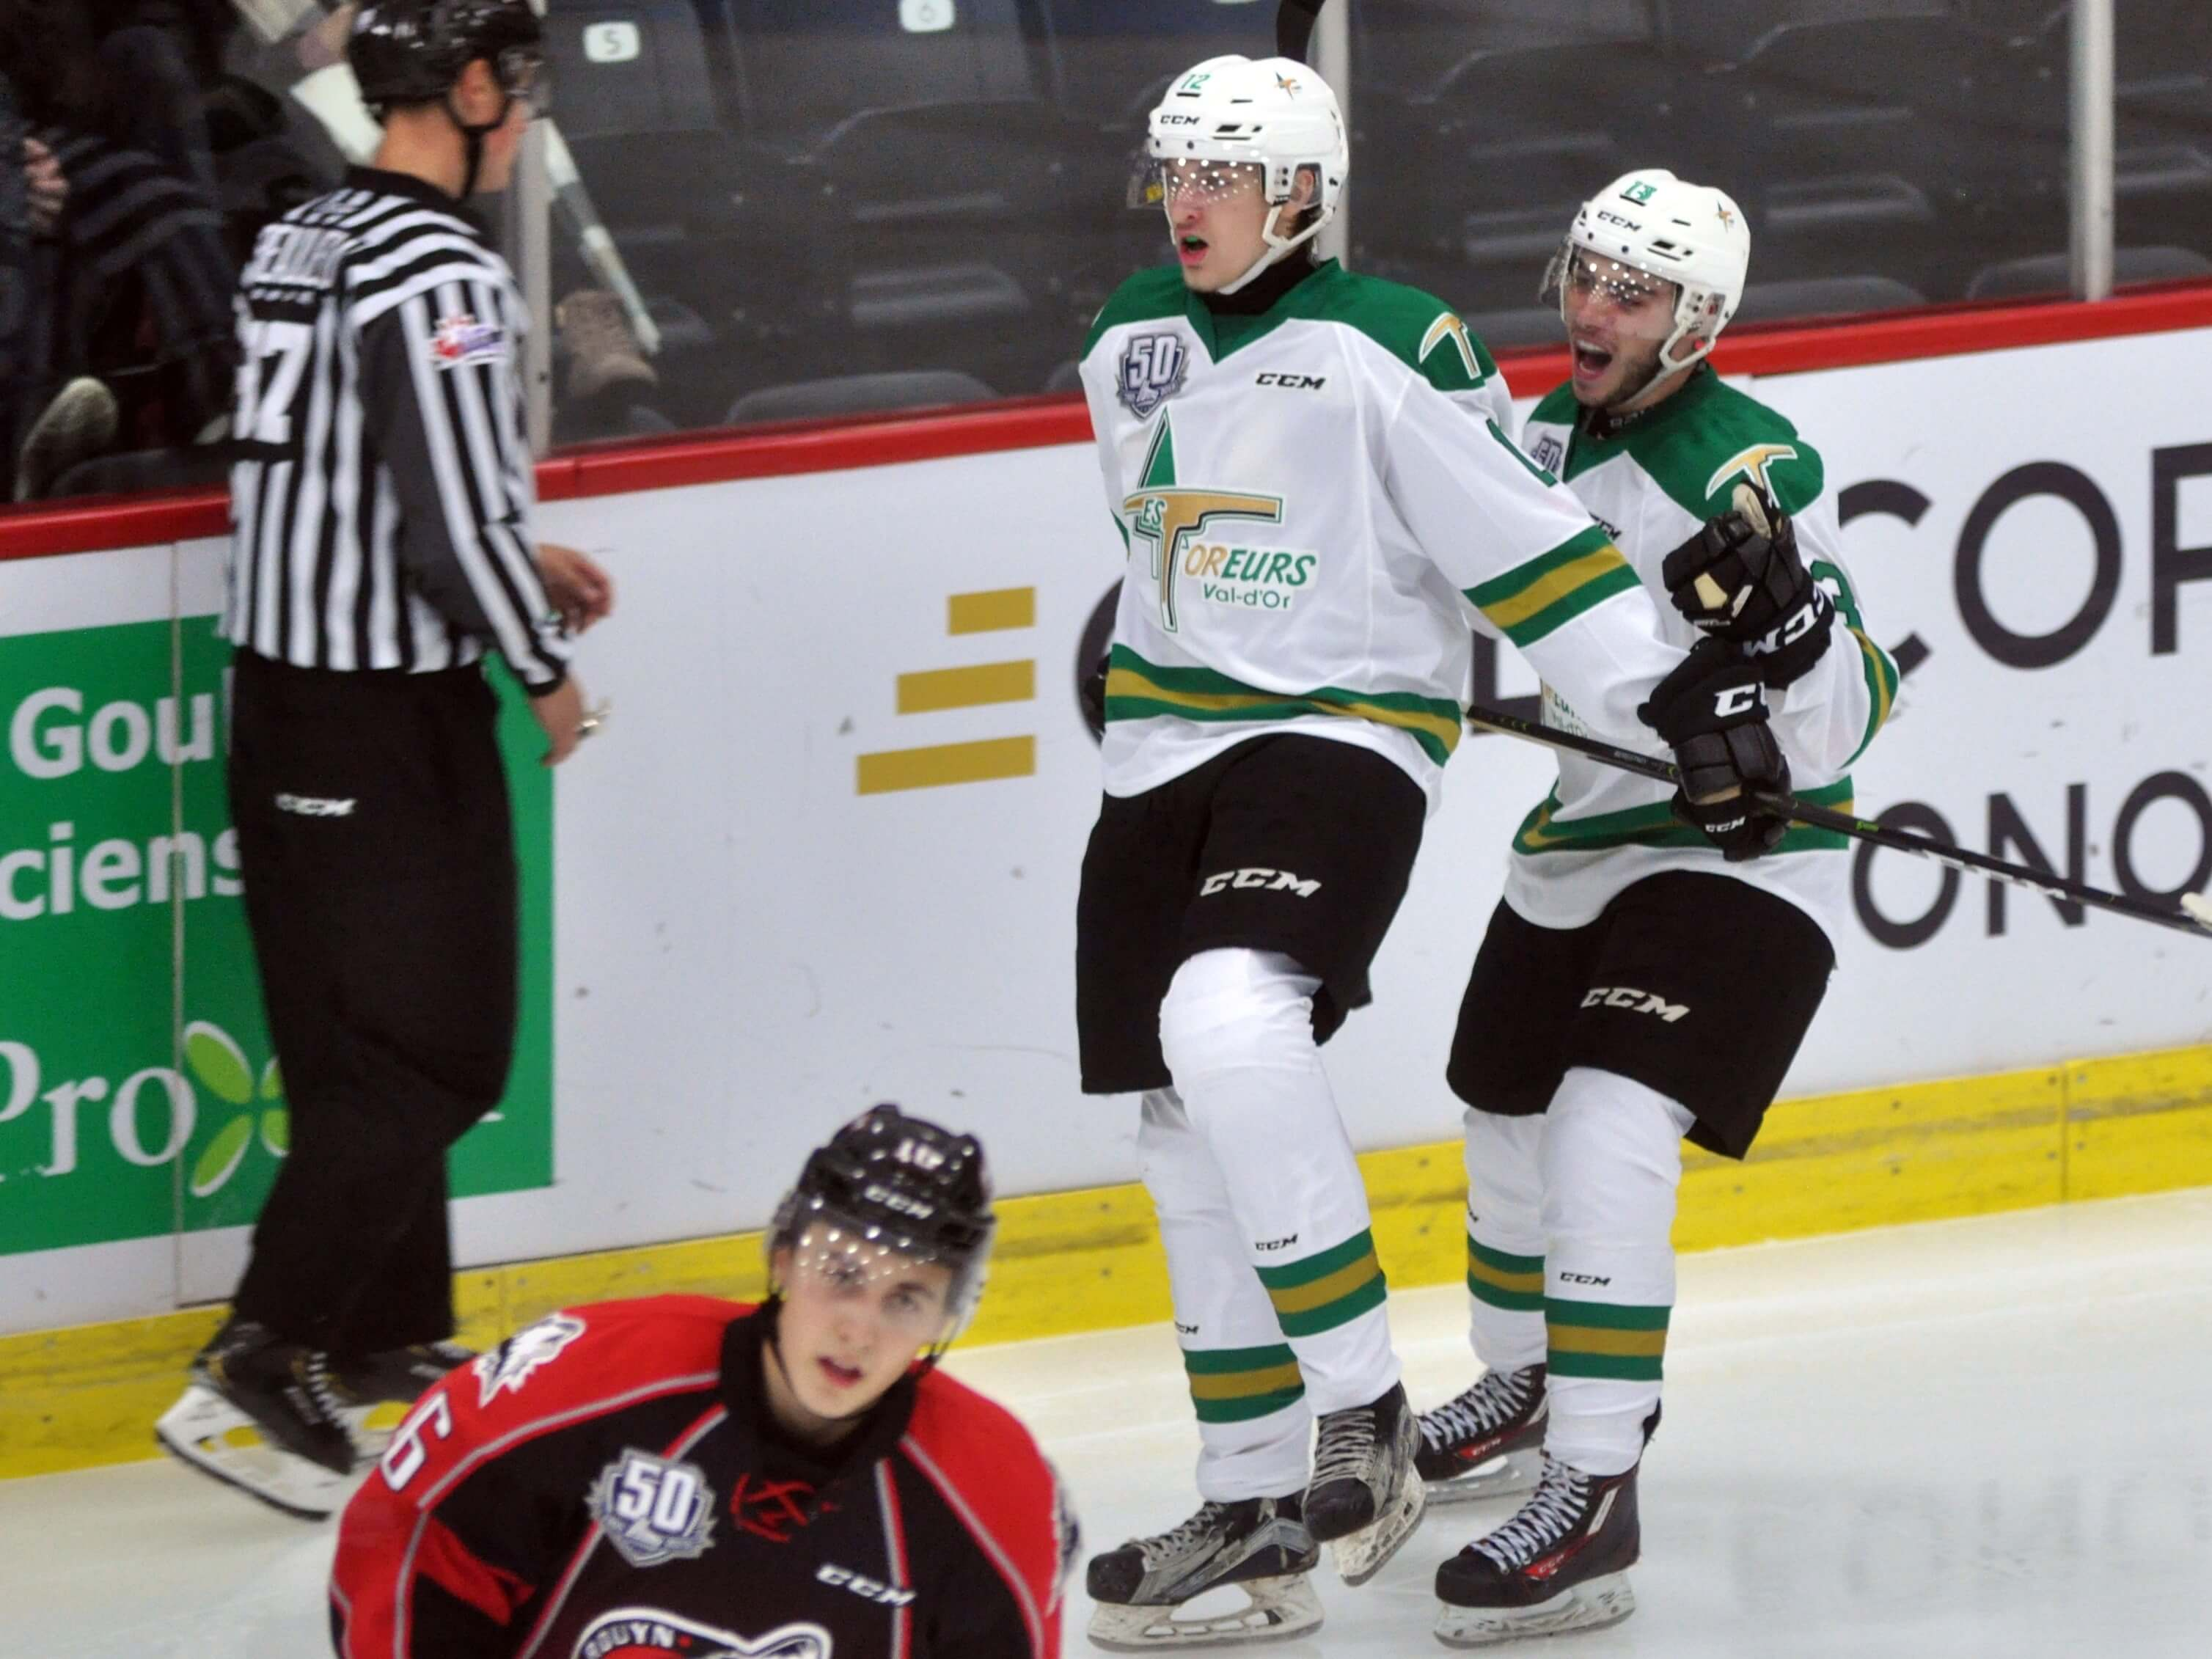 Huskies Rouyn Foreurs Val-d'Or